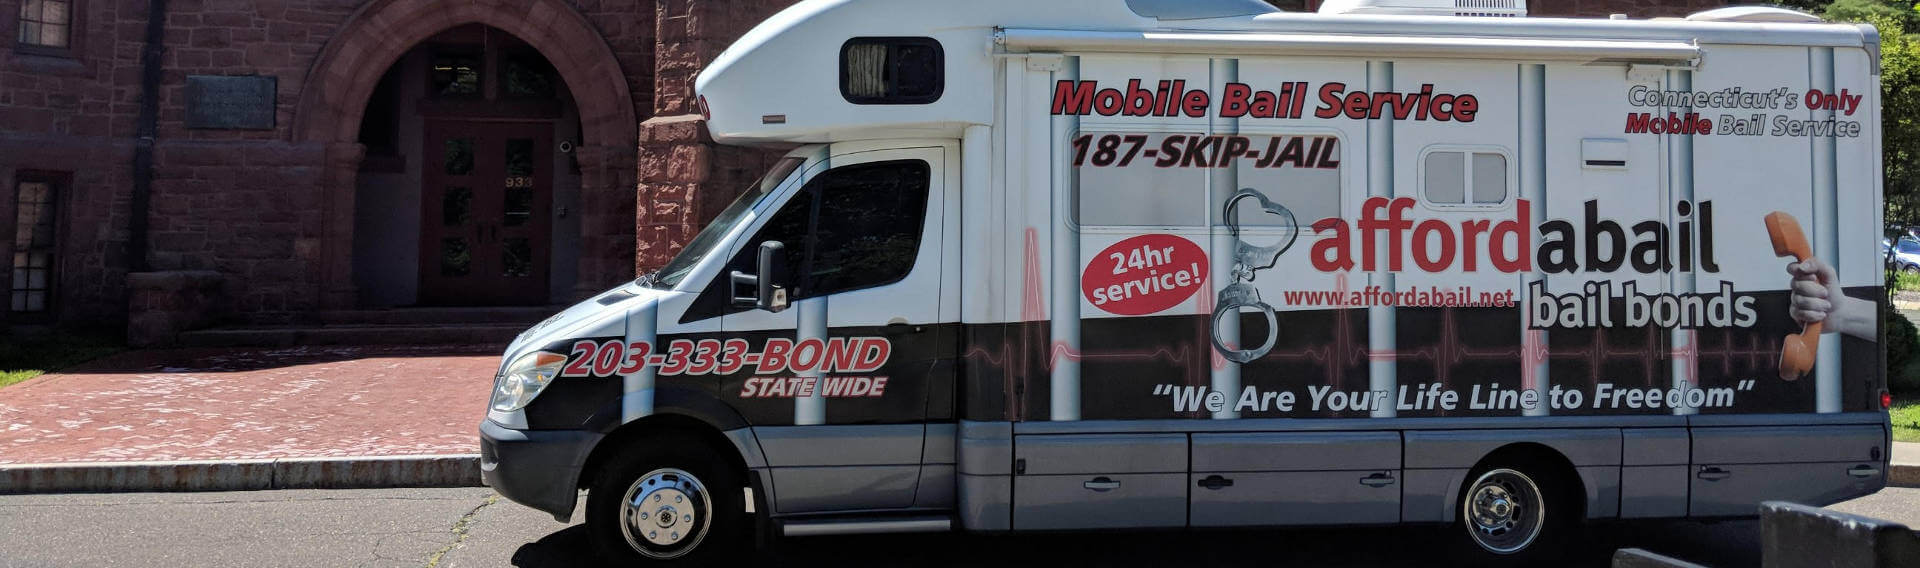 Mobile bail bonds service in Windsor CT